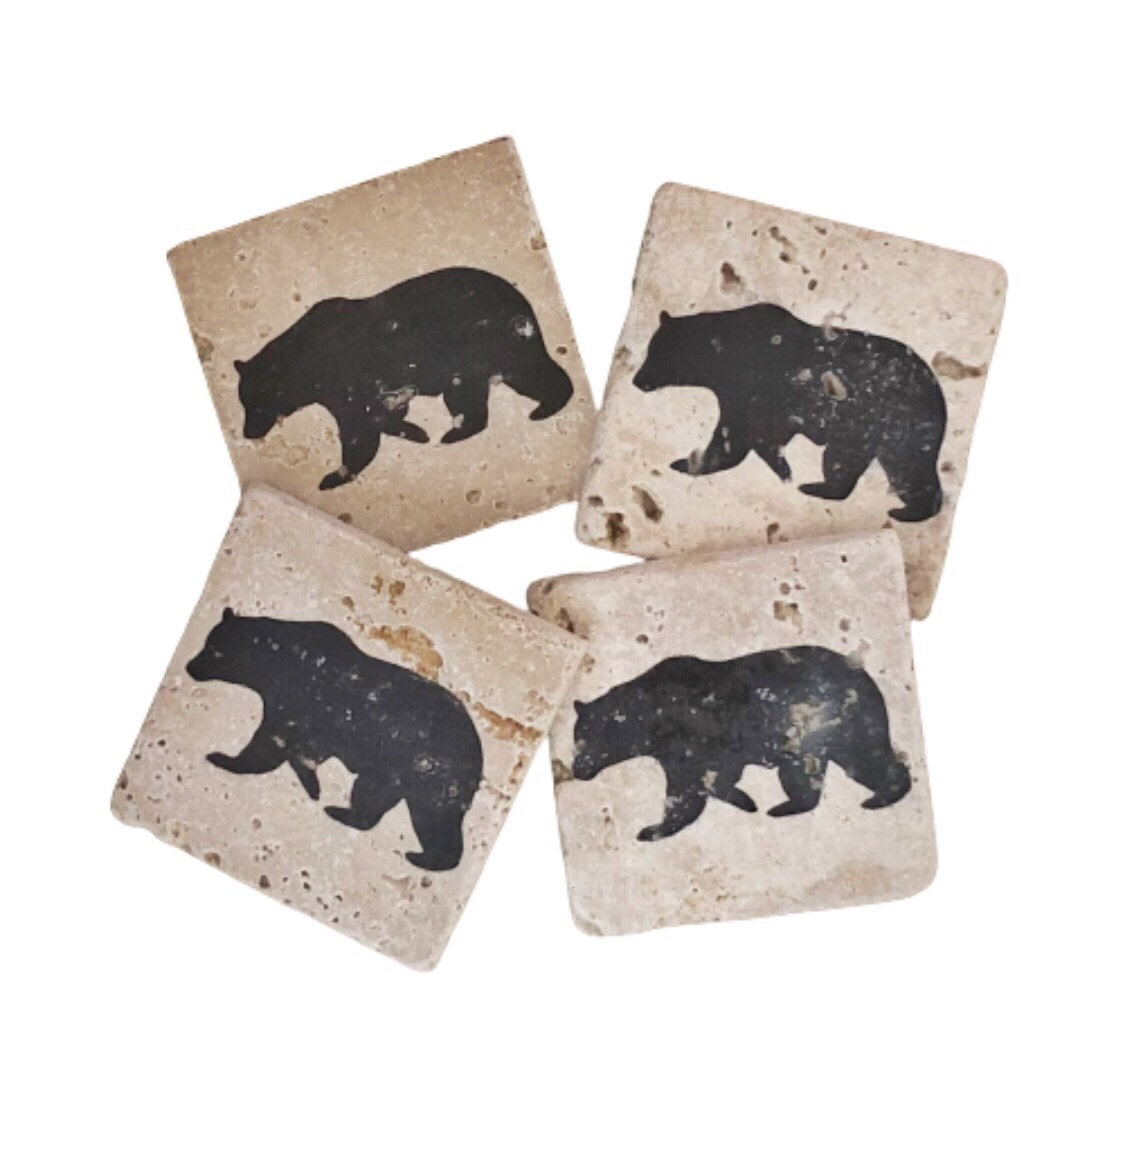 Black Bear Premium Natural Stone Coasters Set of 4, Rustic Wildlife, Made in USA